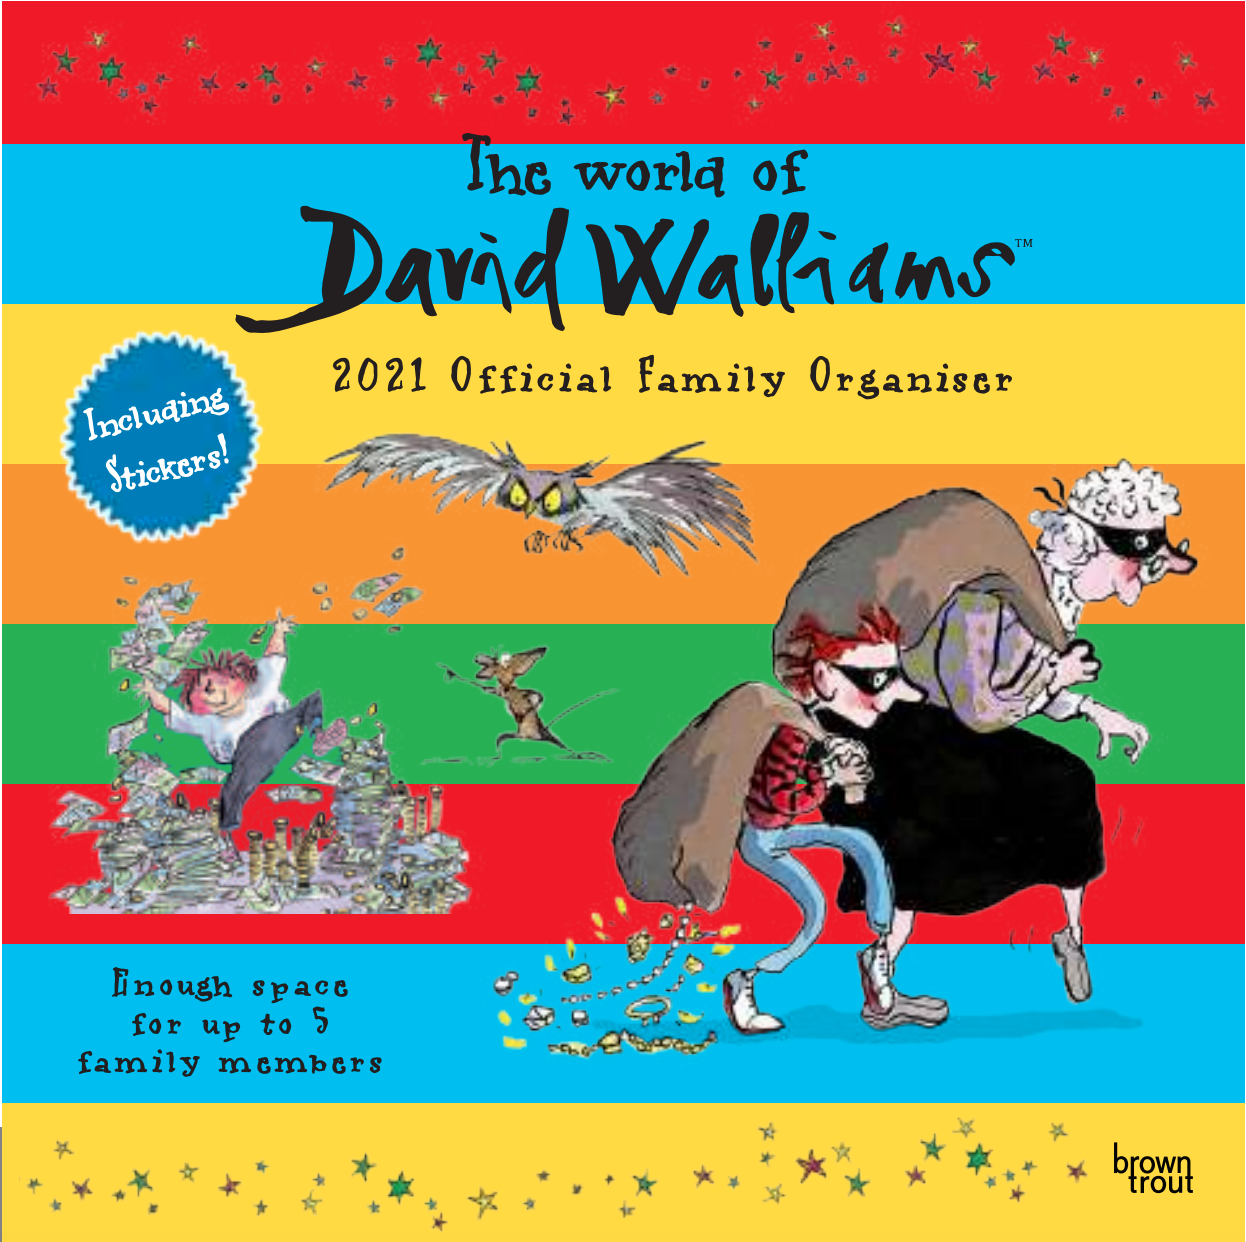 Above: Among the many licences held by BrownTrout included The World of David Walliams.